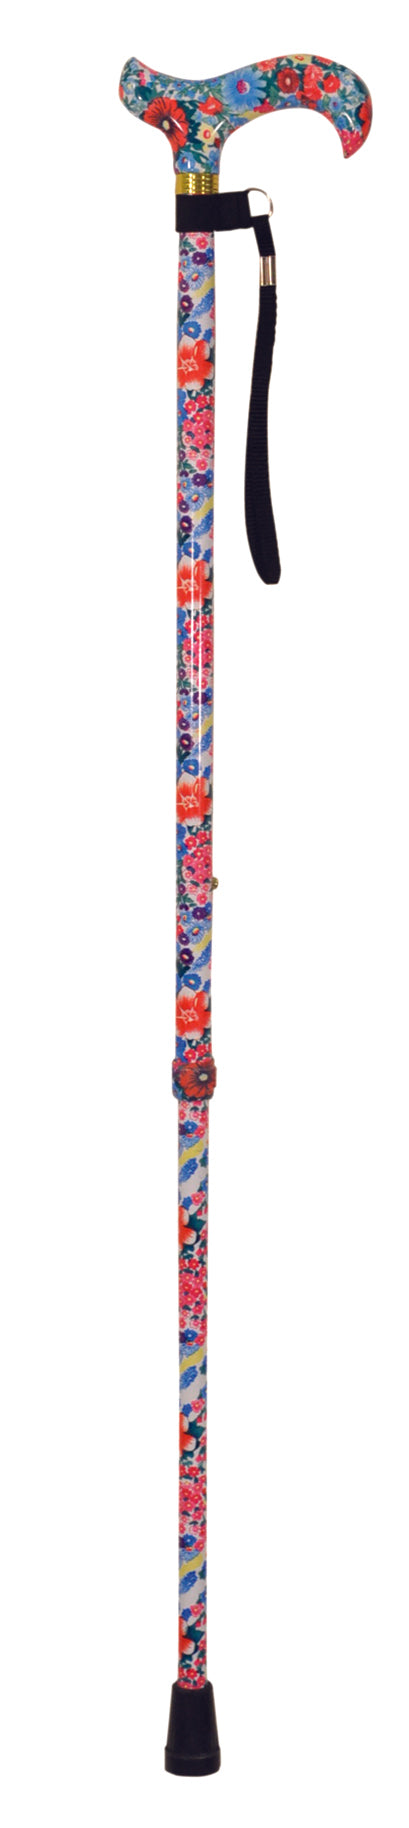 Deluxe Patterned Walking Cane Floral